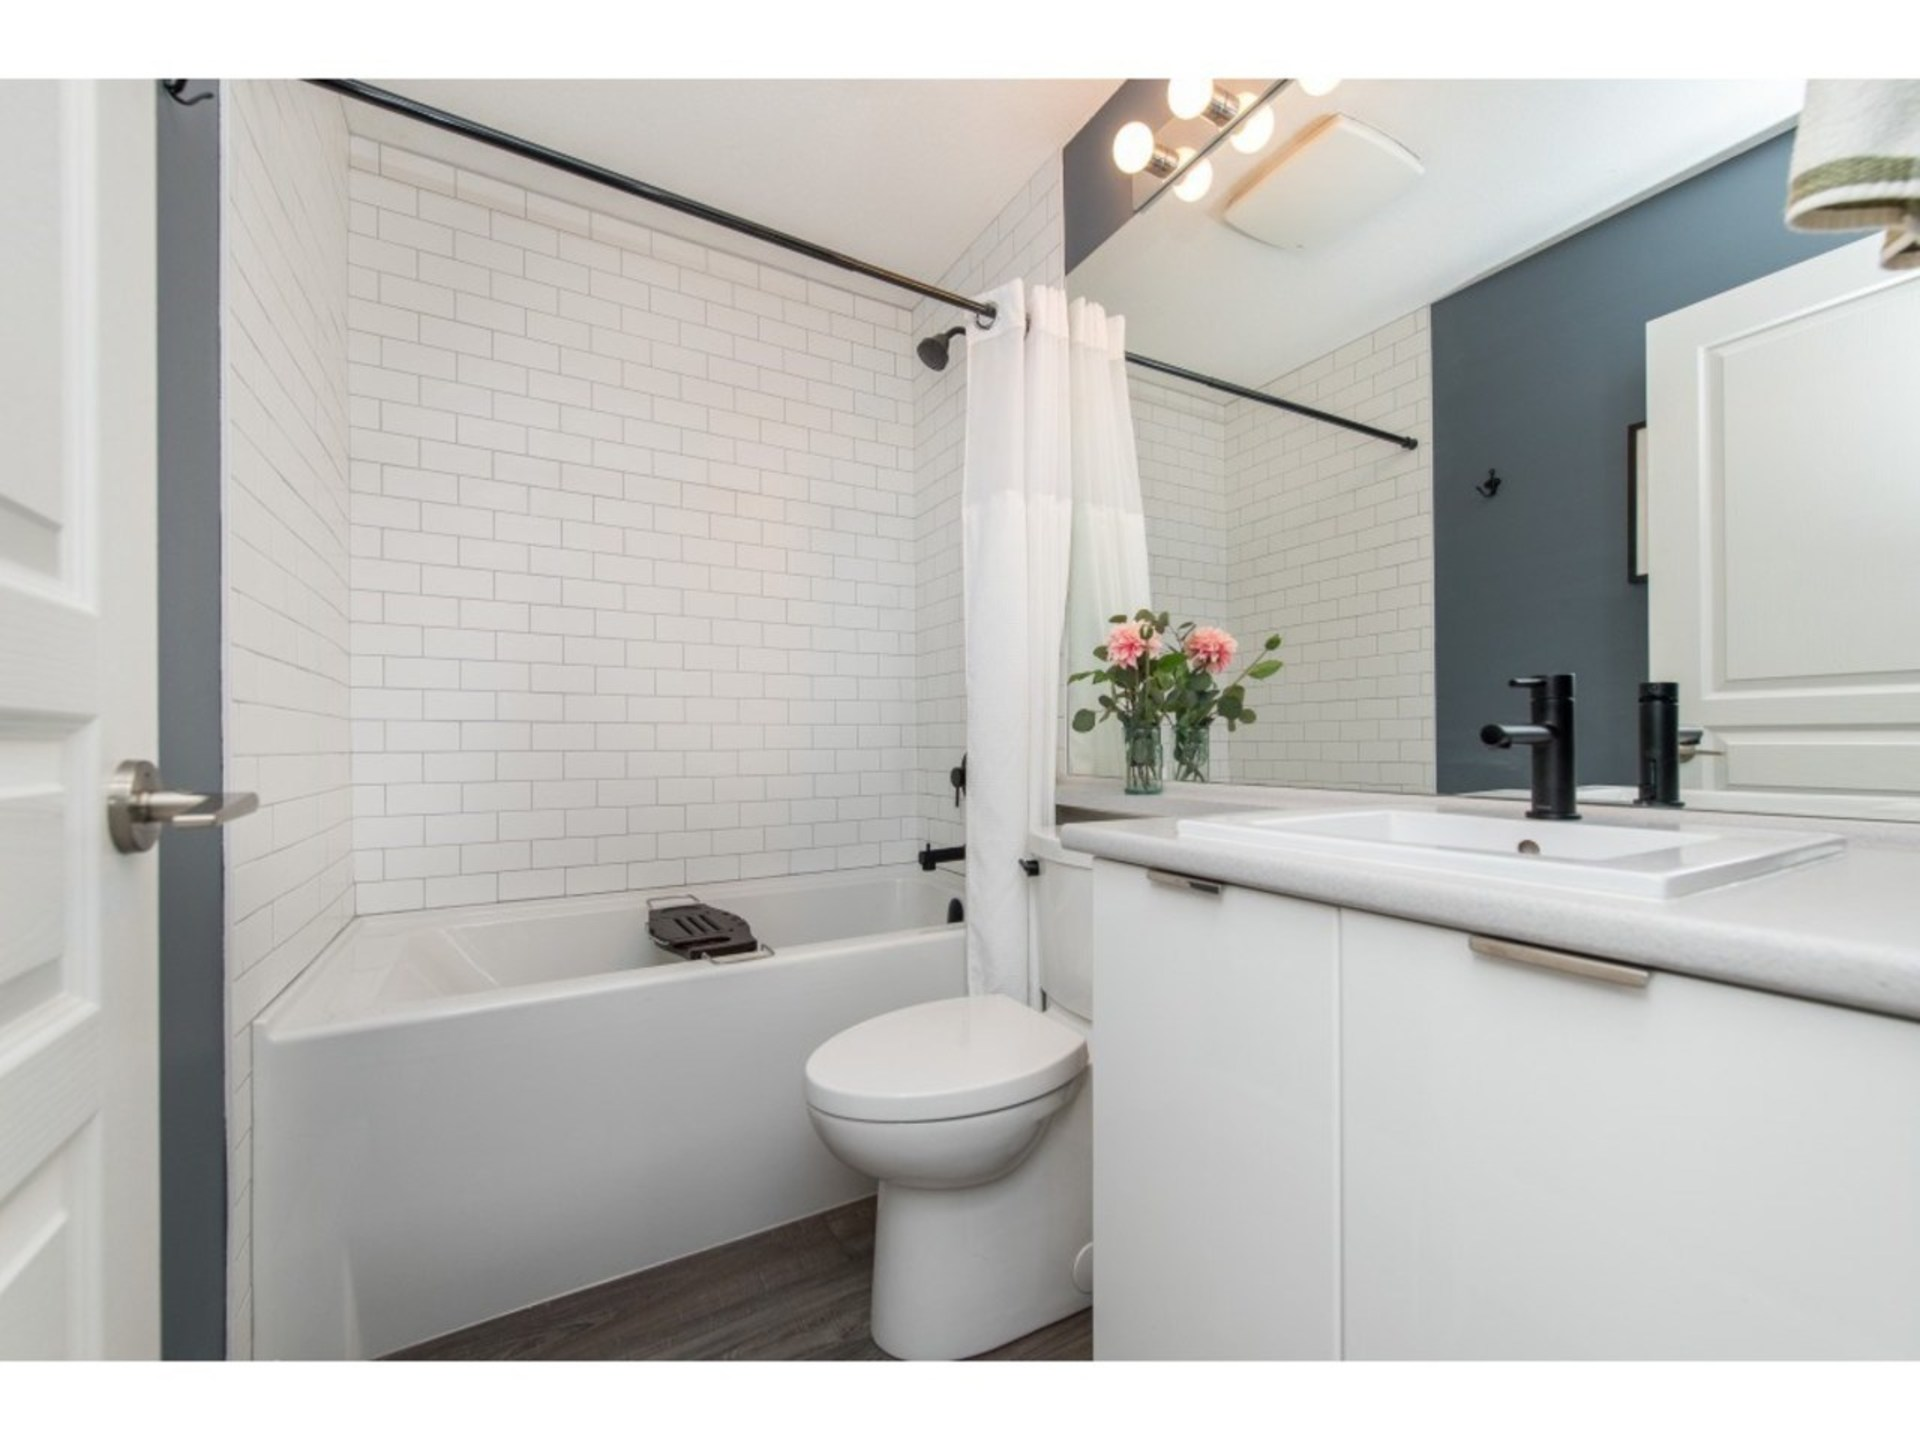 Main bathroom with upgraded deep soaker tub and matte black fixtures at 94 - 30989 Westridge Place, Abbotsford West, Abbotsford